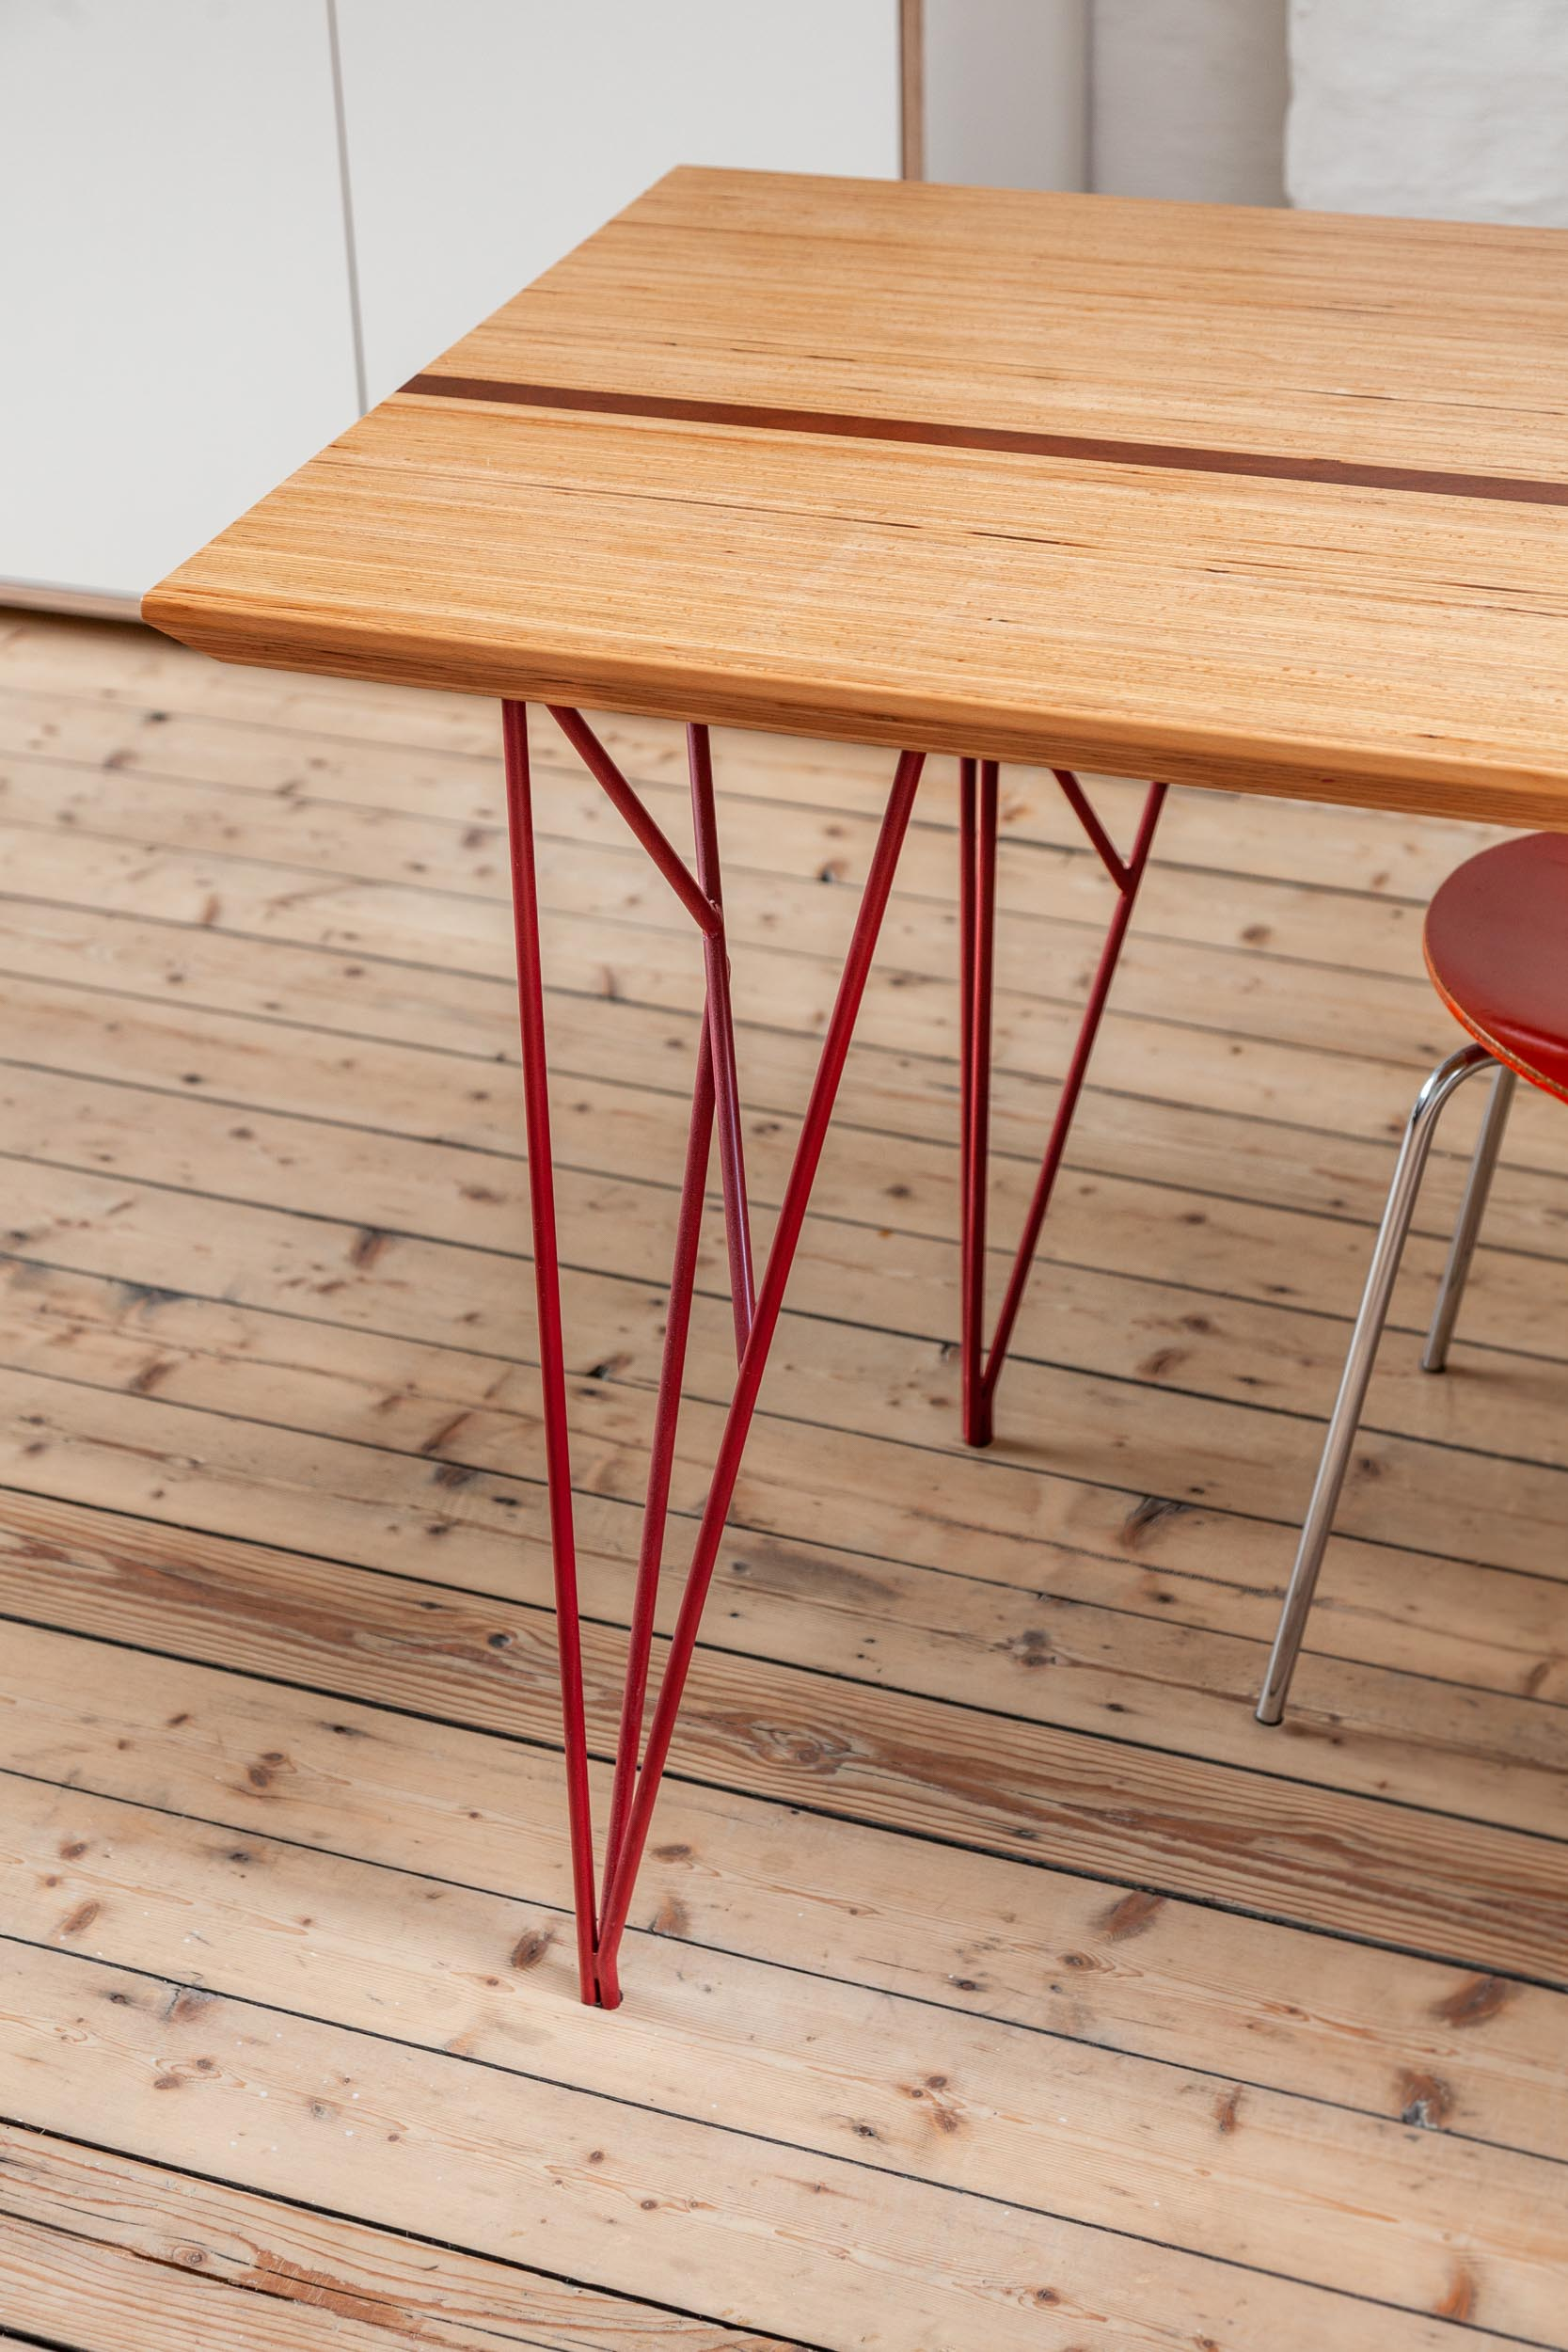 steel table legs and tabletop by bau'm and dinghes